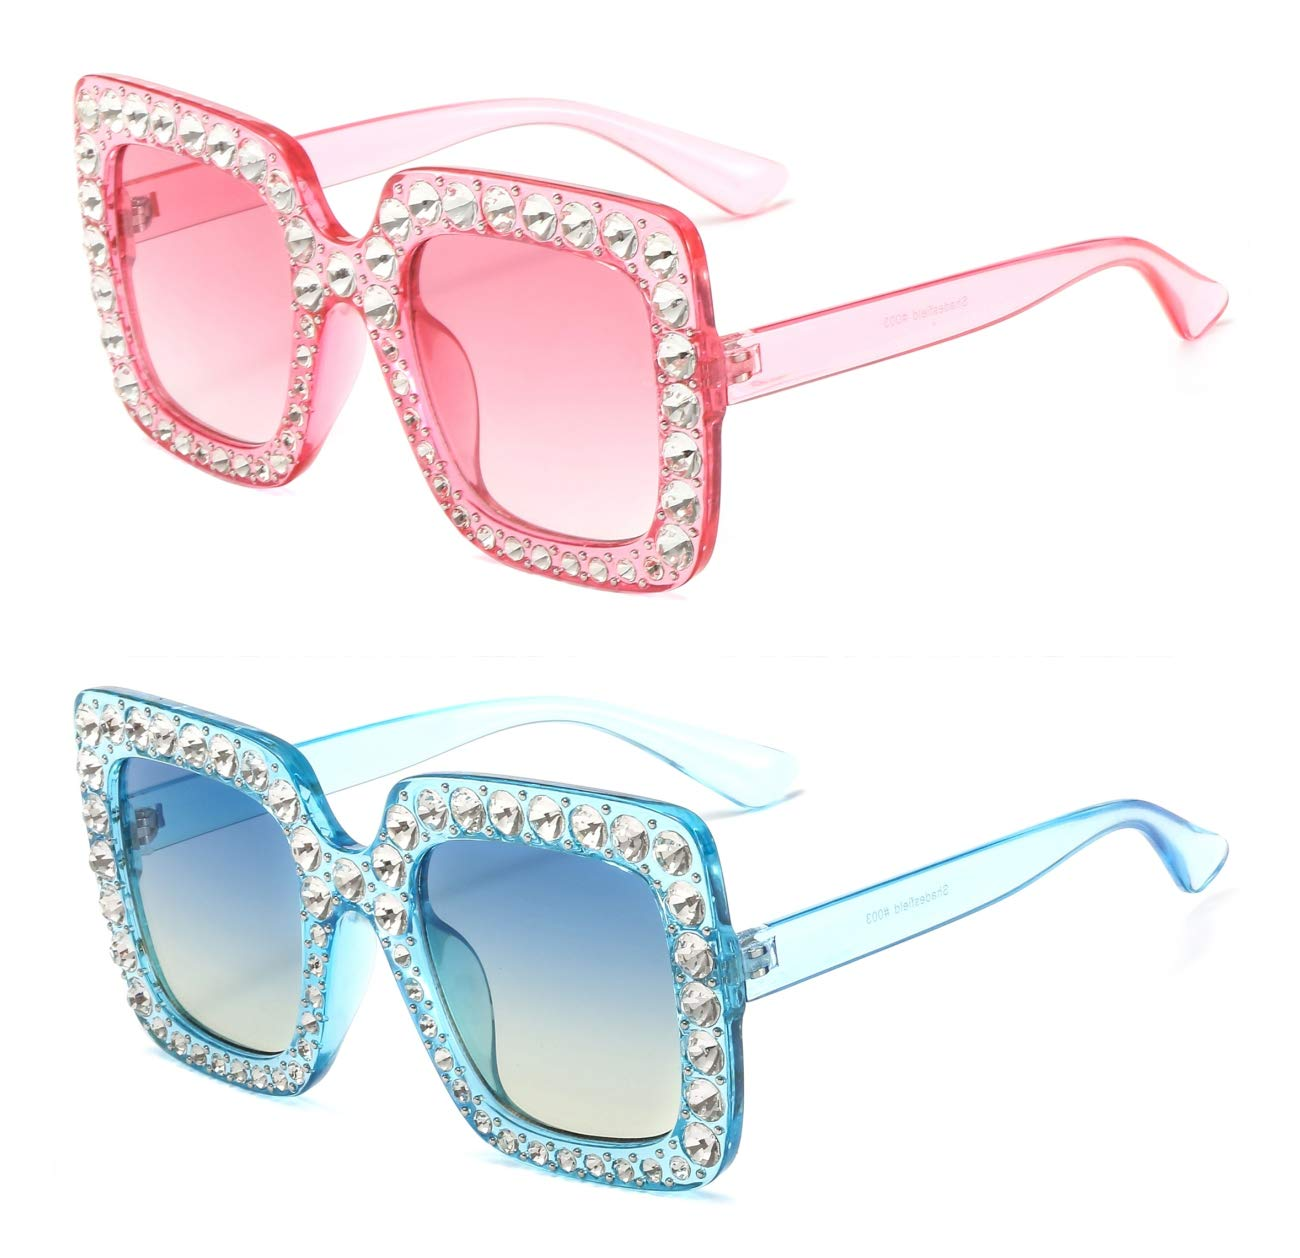 04cbc21fc2c MAOLEN Square and Round Oversized Gradient Shades Crystal Sunglasses for  Women (square blue-blue and square pink-pink)